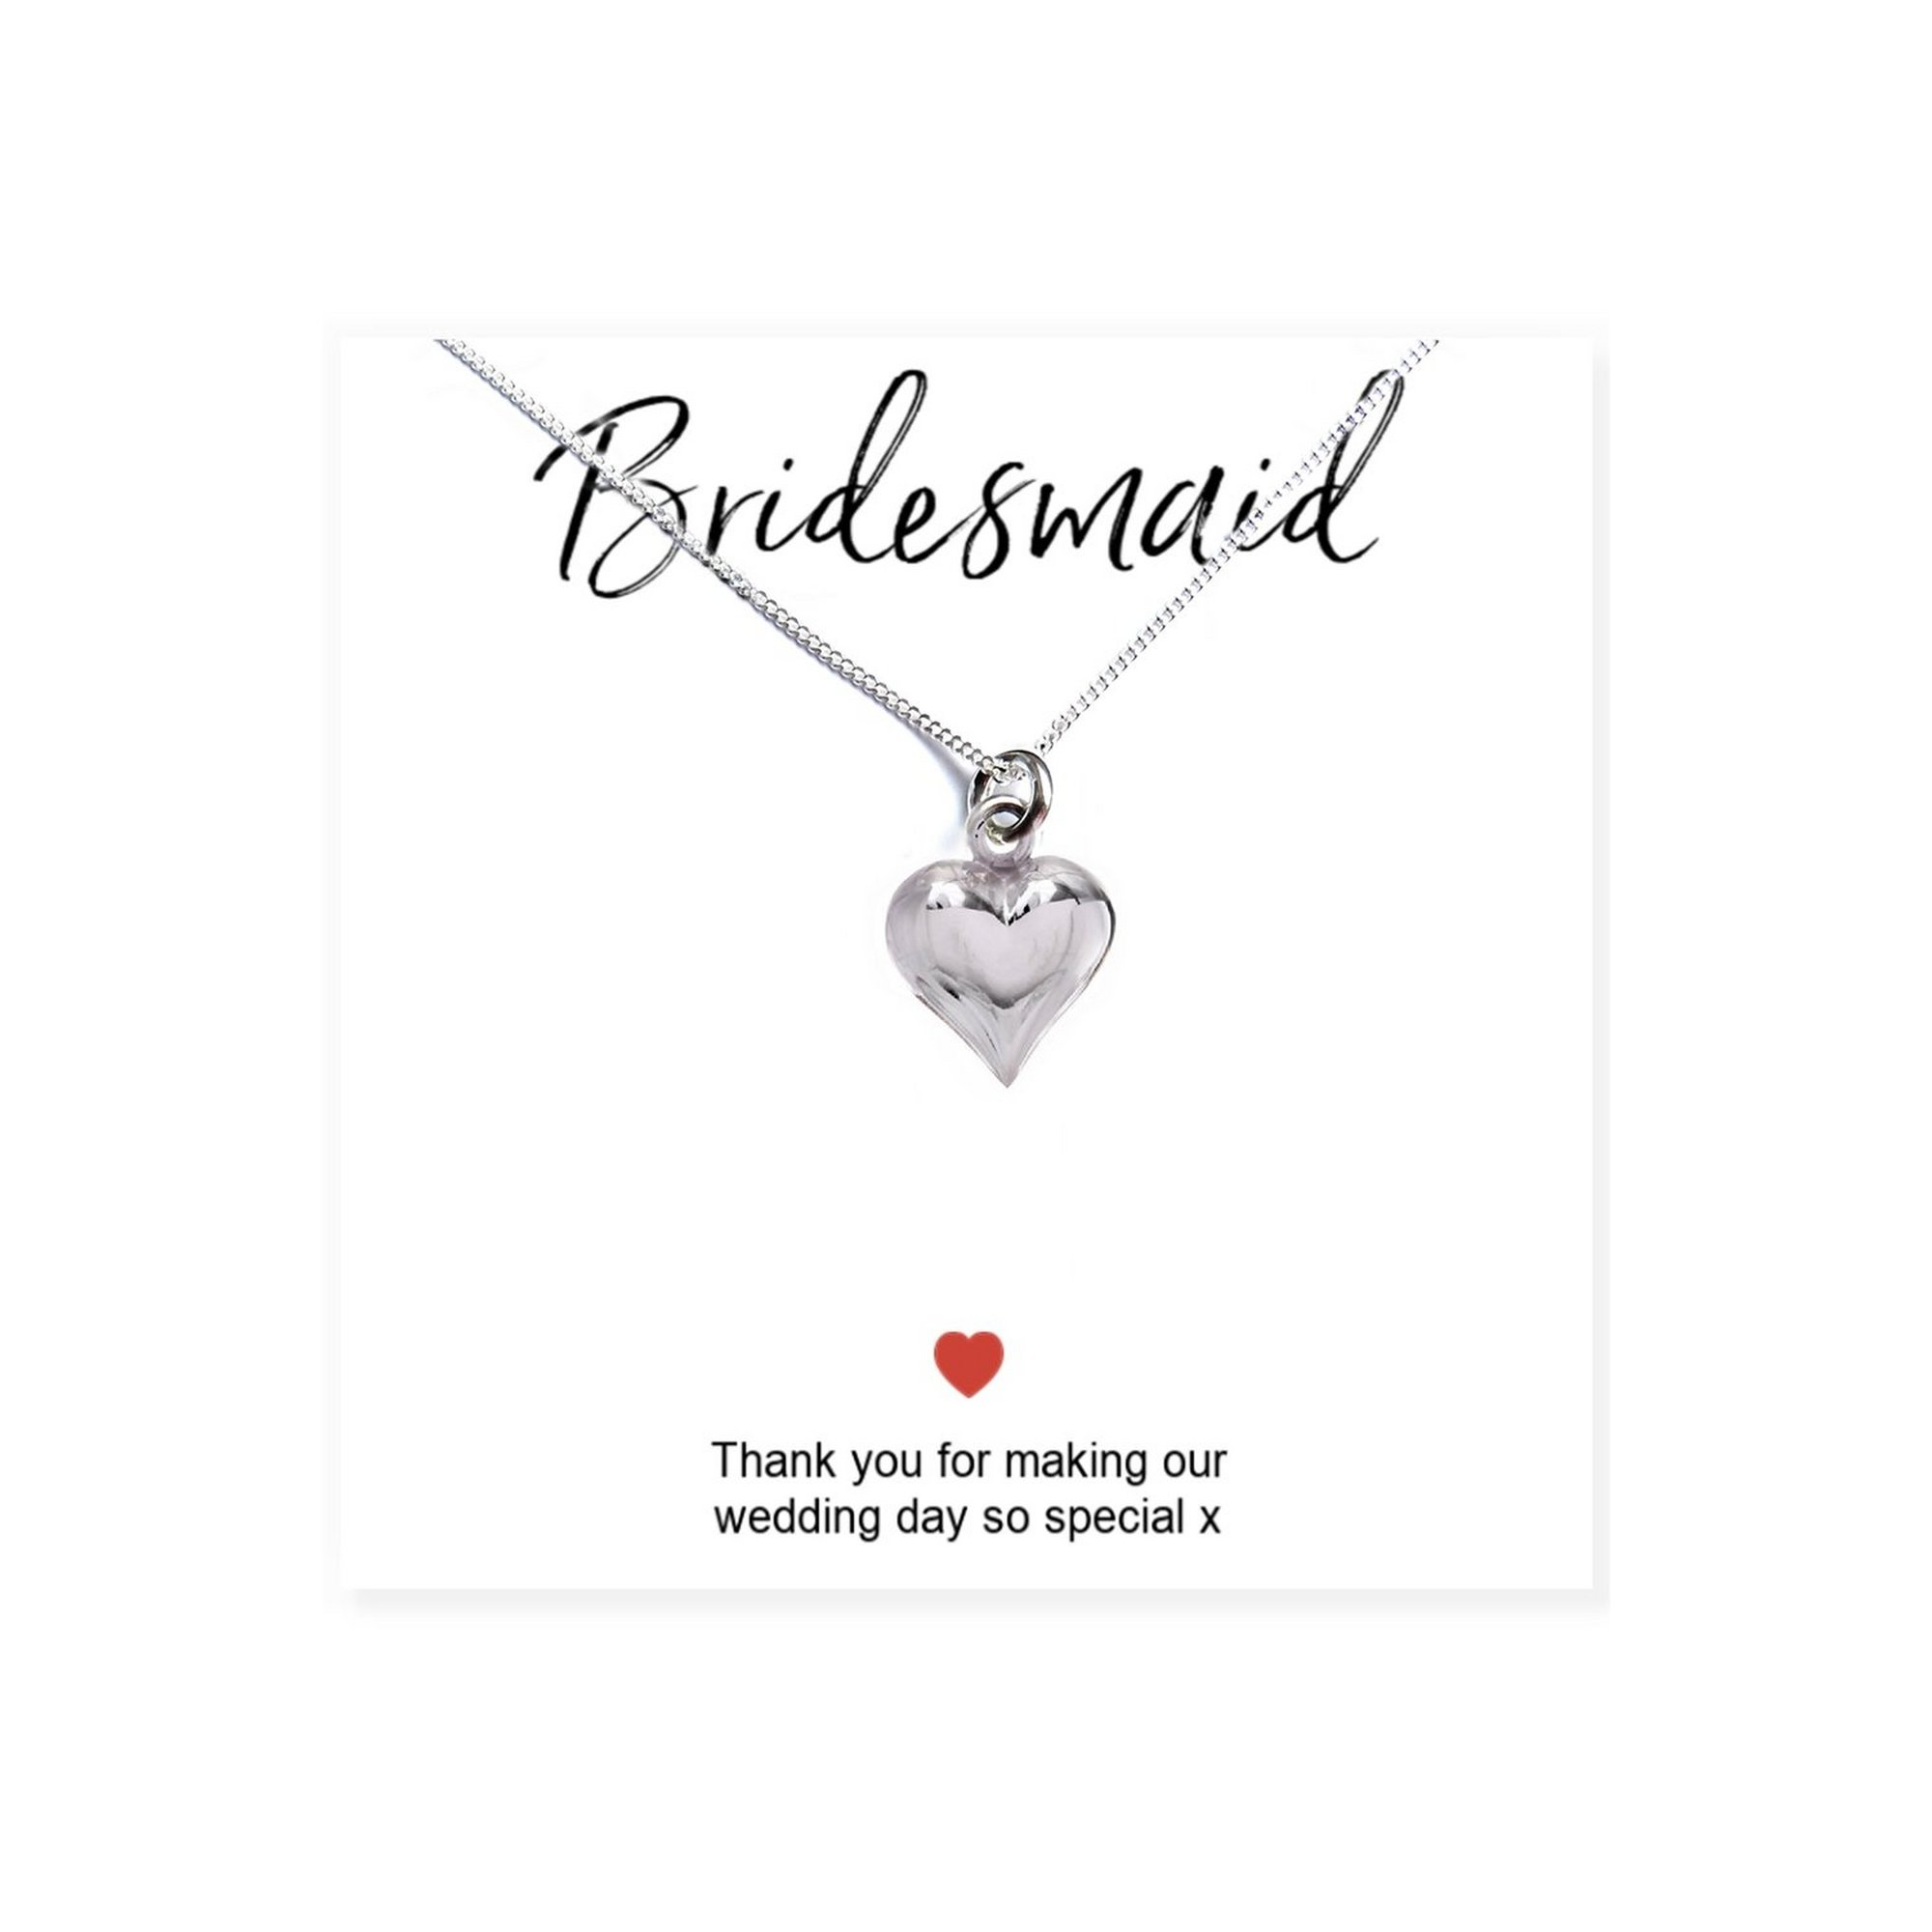 Image of Bridesmaids Heart Necklace and Thank You Card